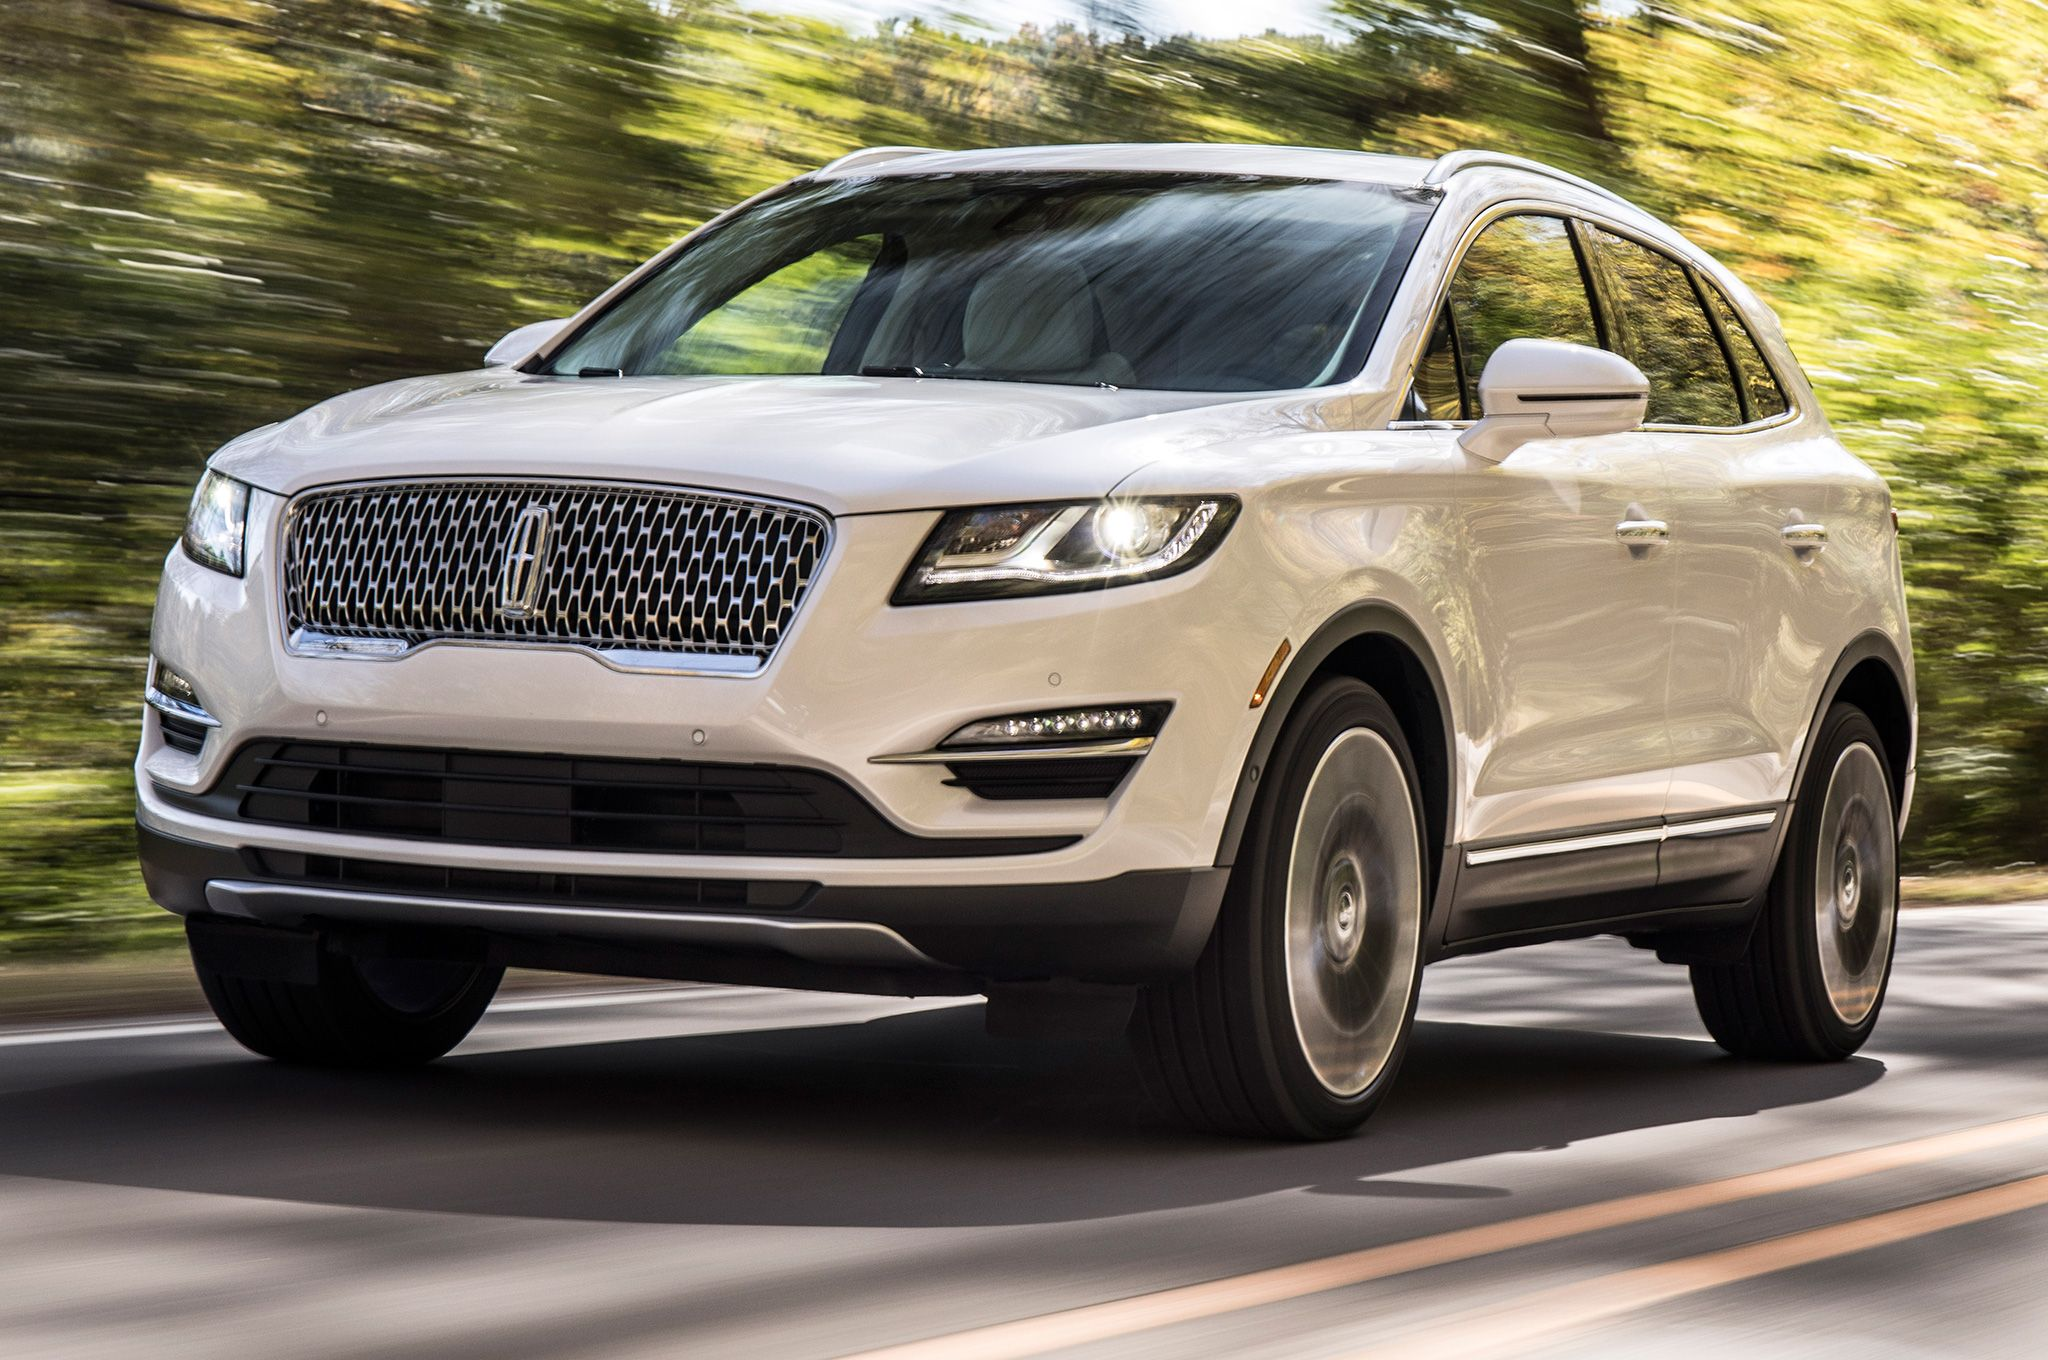 Goodbye Lincoln Mkx Hello Nautilus The 2019 Lincoln Nautilus Midsized Luxury Suv Made Its Debut At The 2017 Los Angeles Lincoln Mkc Lincoln Suv Mercedes Suv